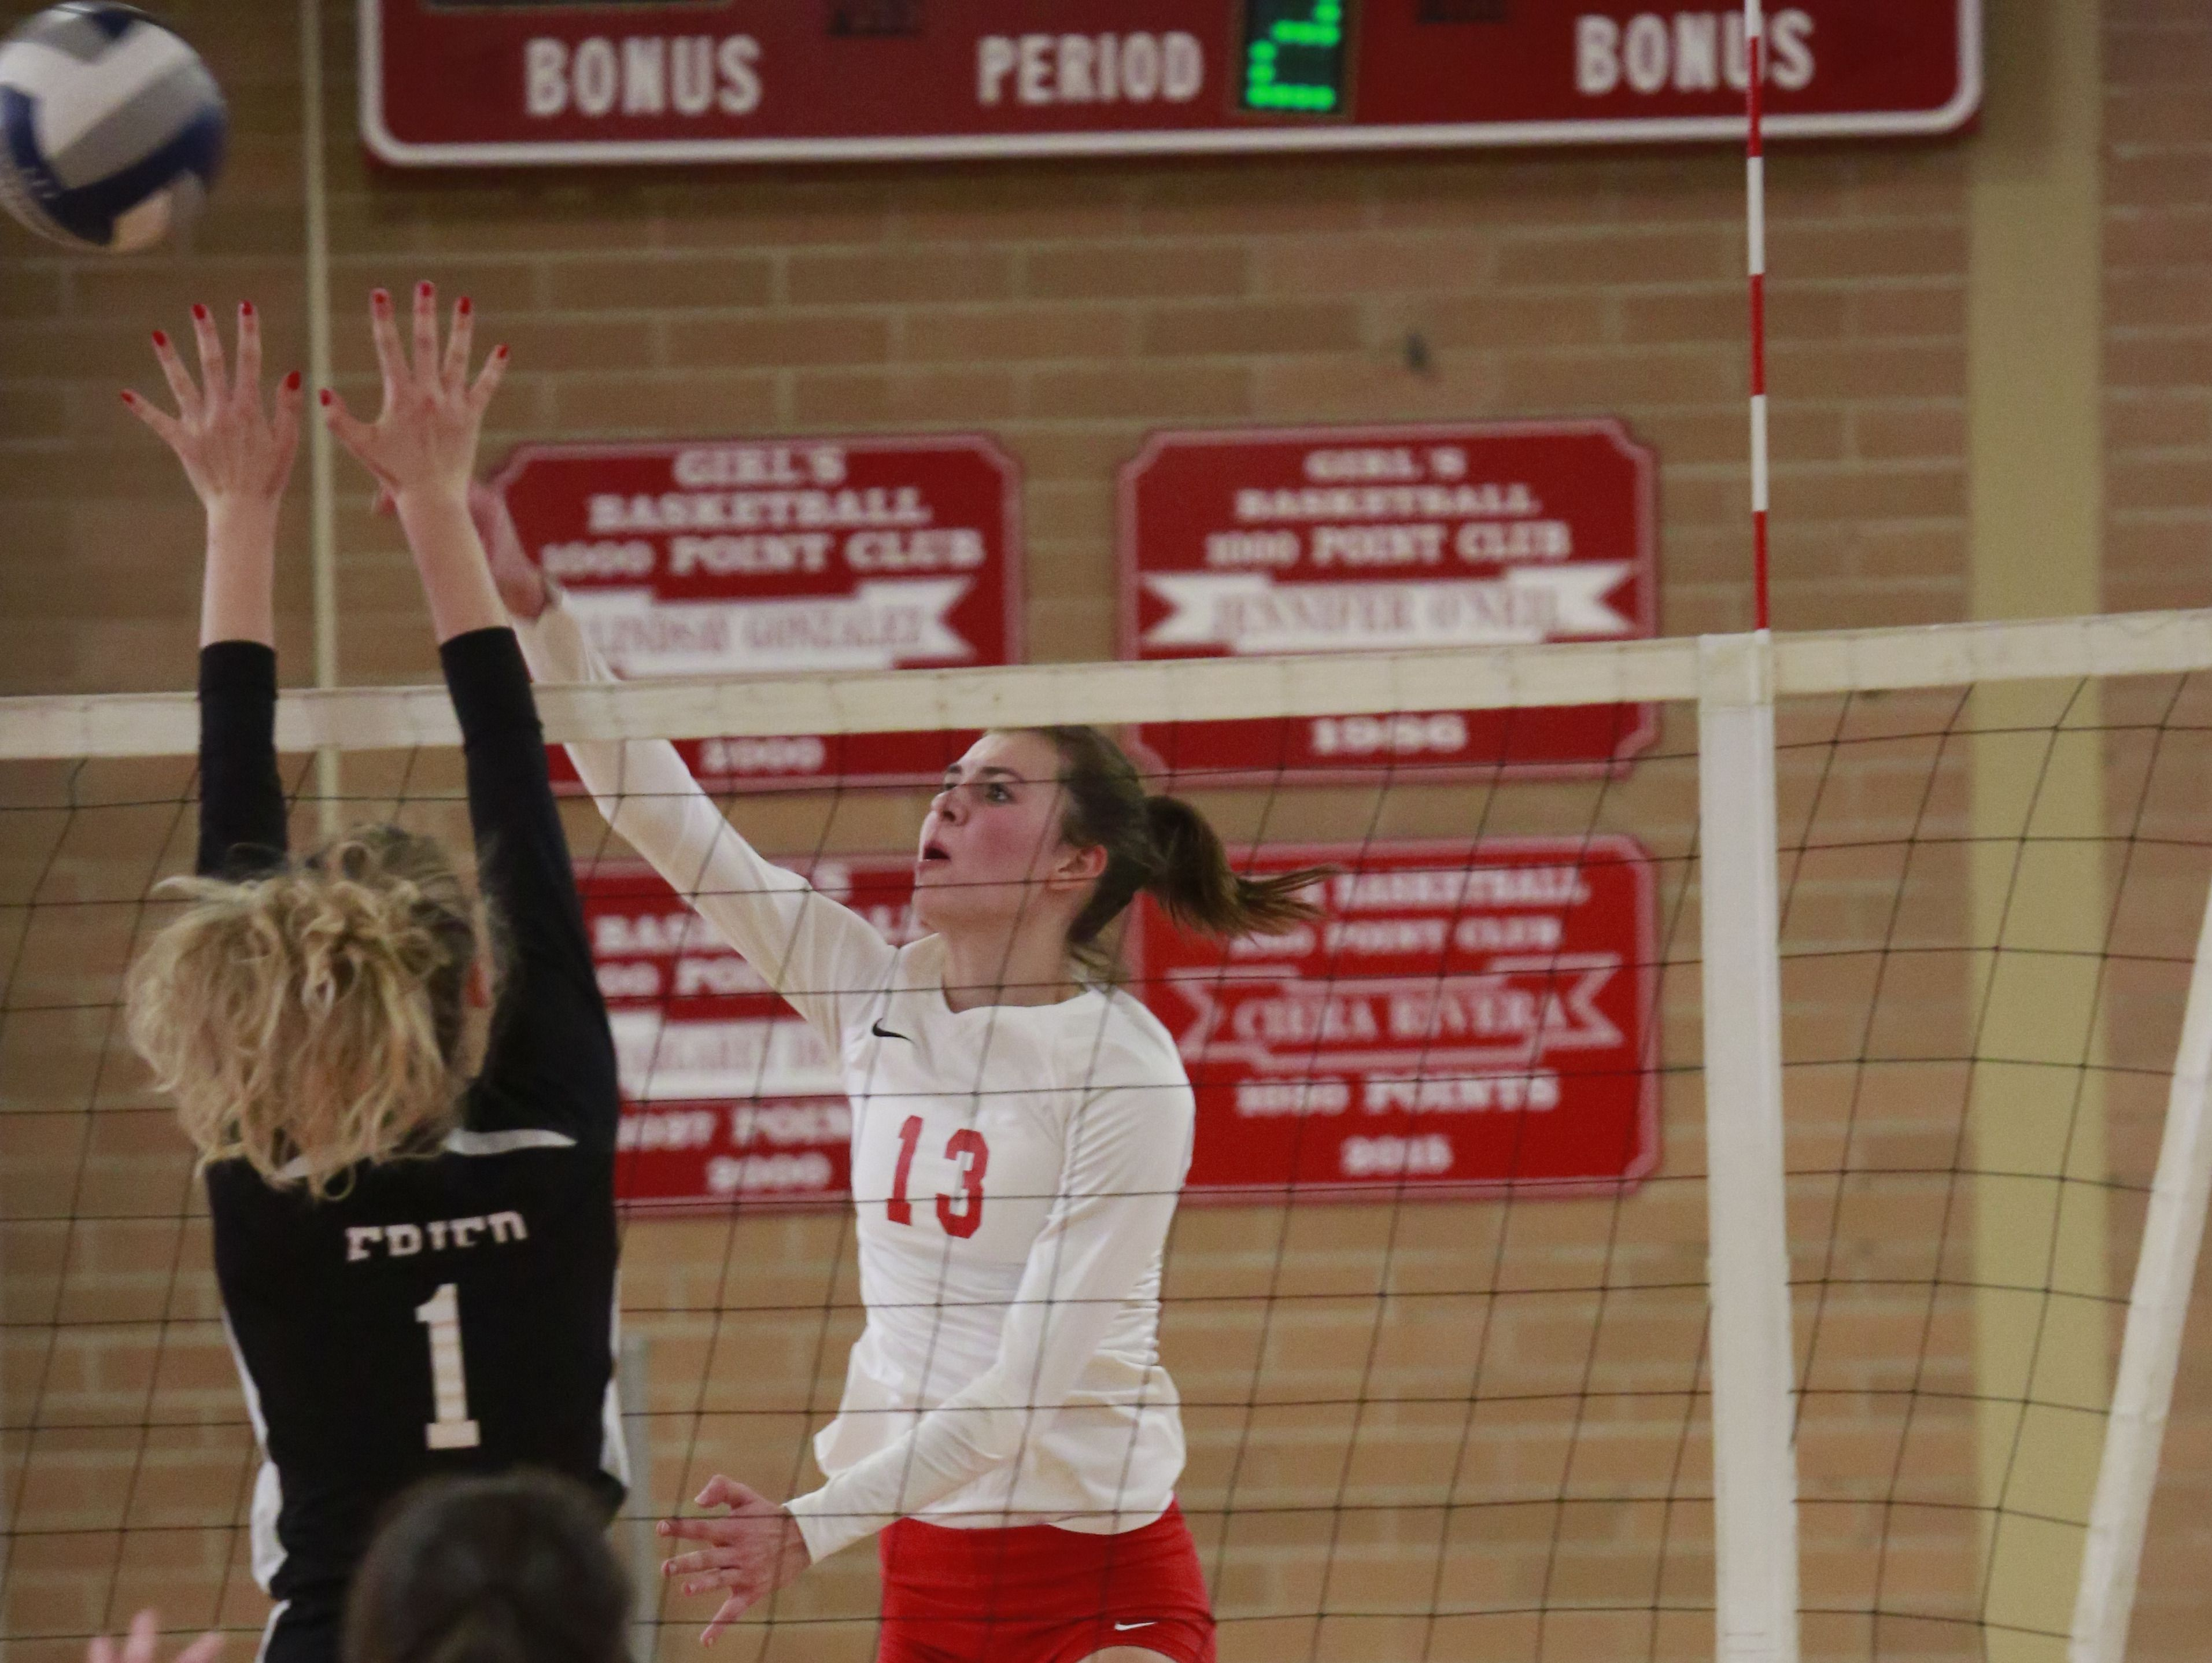 North Rockland volleyball player Madison Monahan (13) returns the ball against Scarsdale at North Rockland High School in Thiells on Oct. 31, 2016.